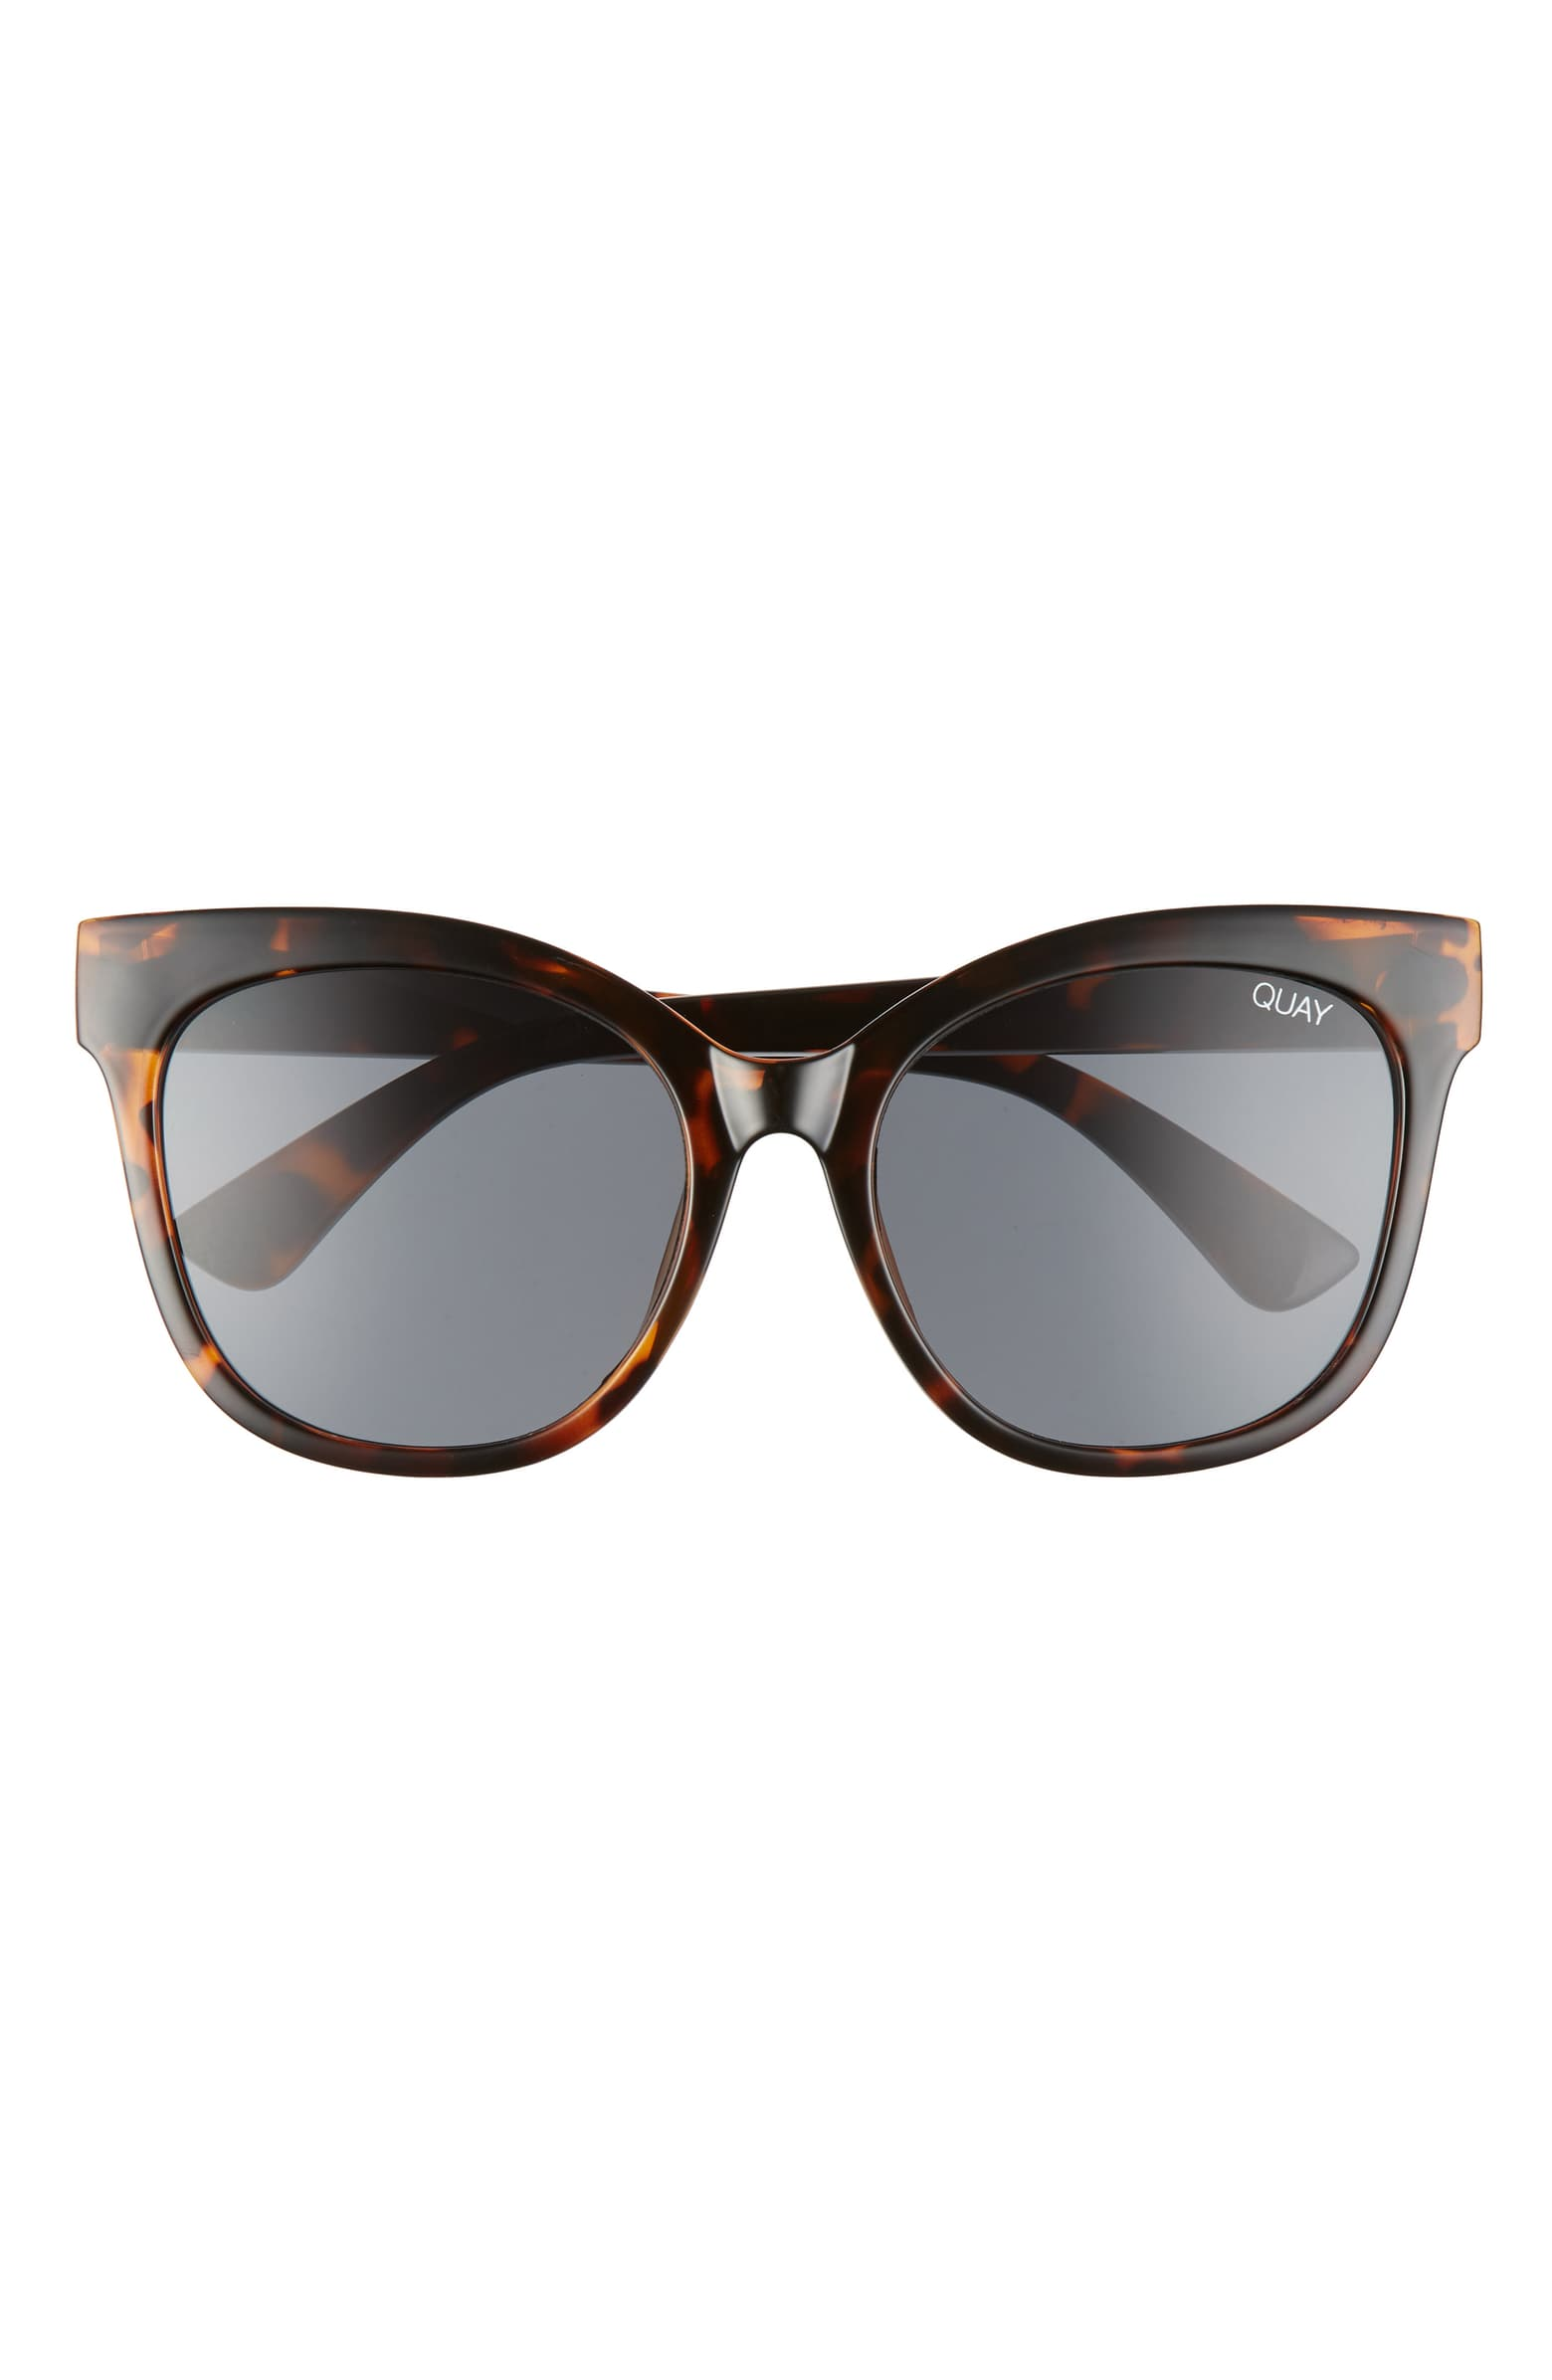 "If you need new sunnies, check out these{&nbsp;}<a  href=""https://www.nordstrom.com/s/quay-australia-its-my-way-55mm-cat-eye-sunglasses/4456686?origin=keywordsearch-personalizedsort&breadcrumb=Home%2FAll%20Results&color=tortoise%2F%20smoke"" target=""_blank"" title=""https://www.nordstrom.com/s/quay-australia-its-my-way-55mm-cat-eye-sunglasses/4456686?origin=keywordsearch-personalizedsort&breadcrumb=Home%2FAll%20Results&color=tortoise%2F%20smoke"">Quay Australia, It's My Way 55mm Sunglasses</a>: $35.90 (after sale: $55) (Image: Nordstrom)"